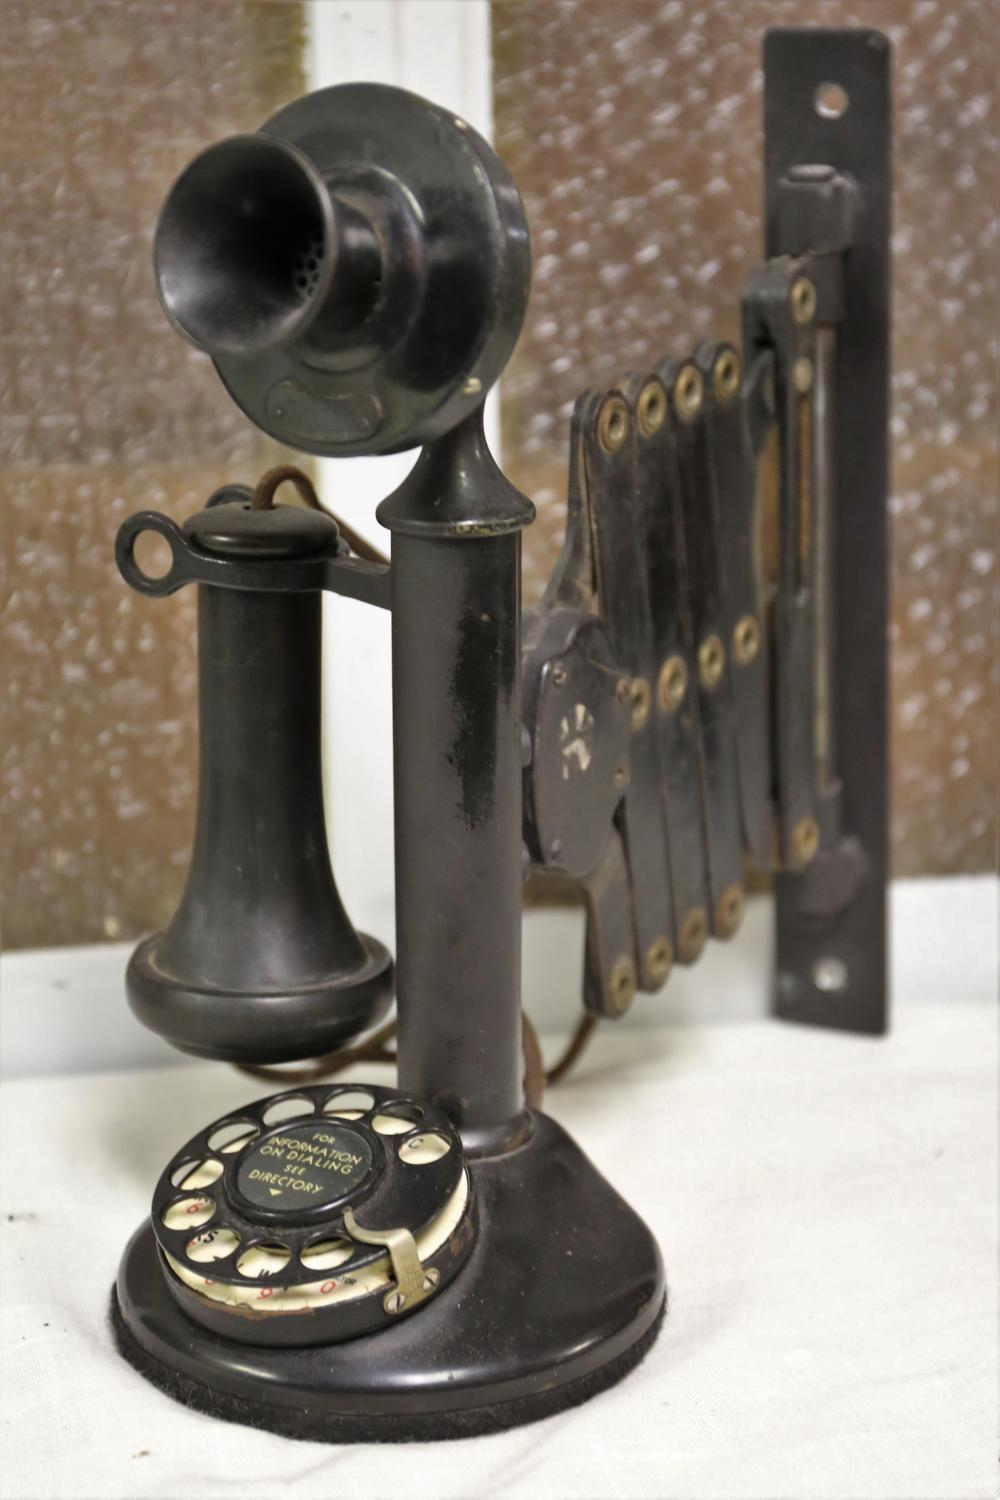 Vintage candlestick phone with wall mount extender